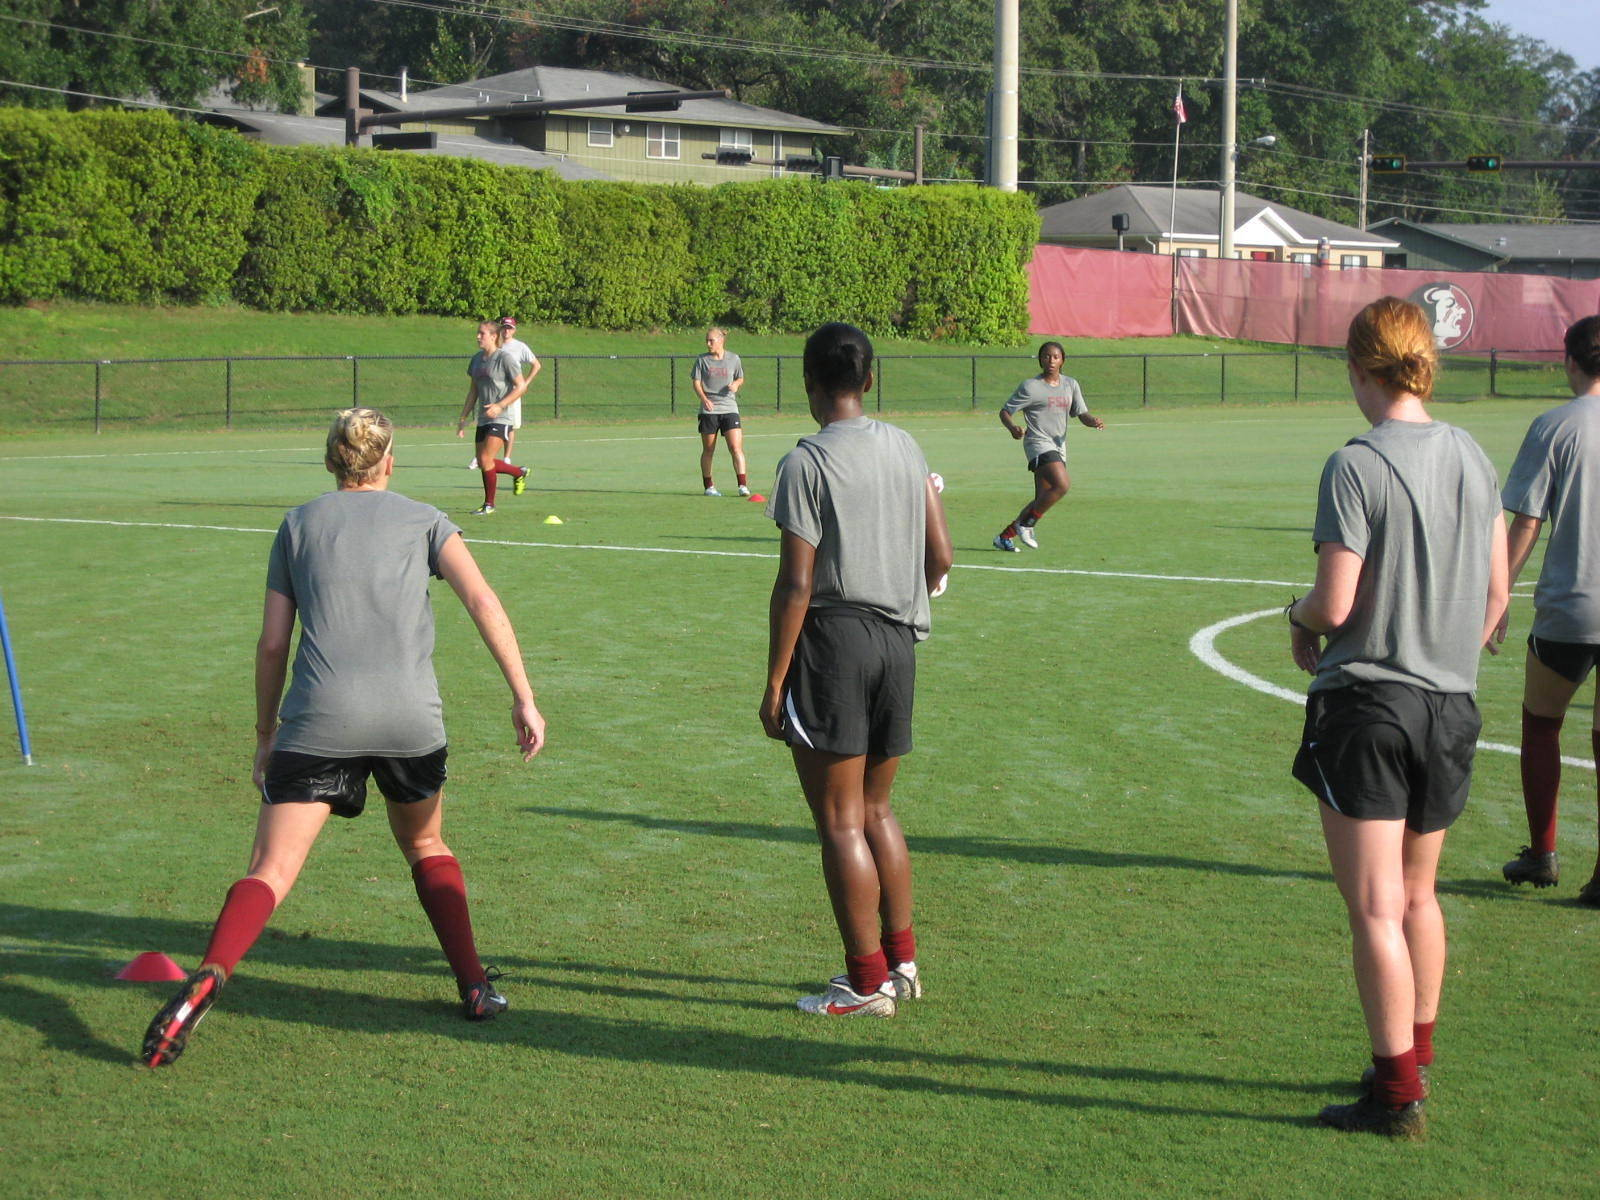 First day of practice for the Seminole Soccer team.